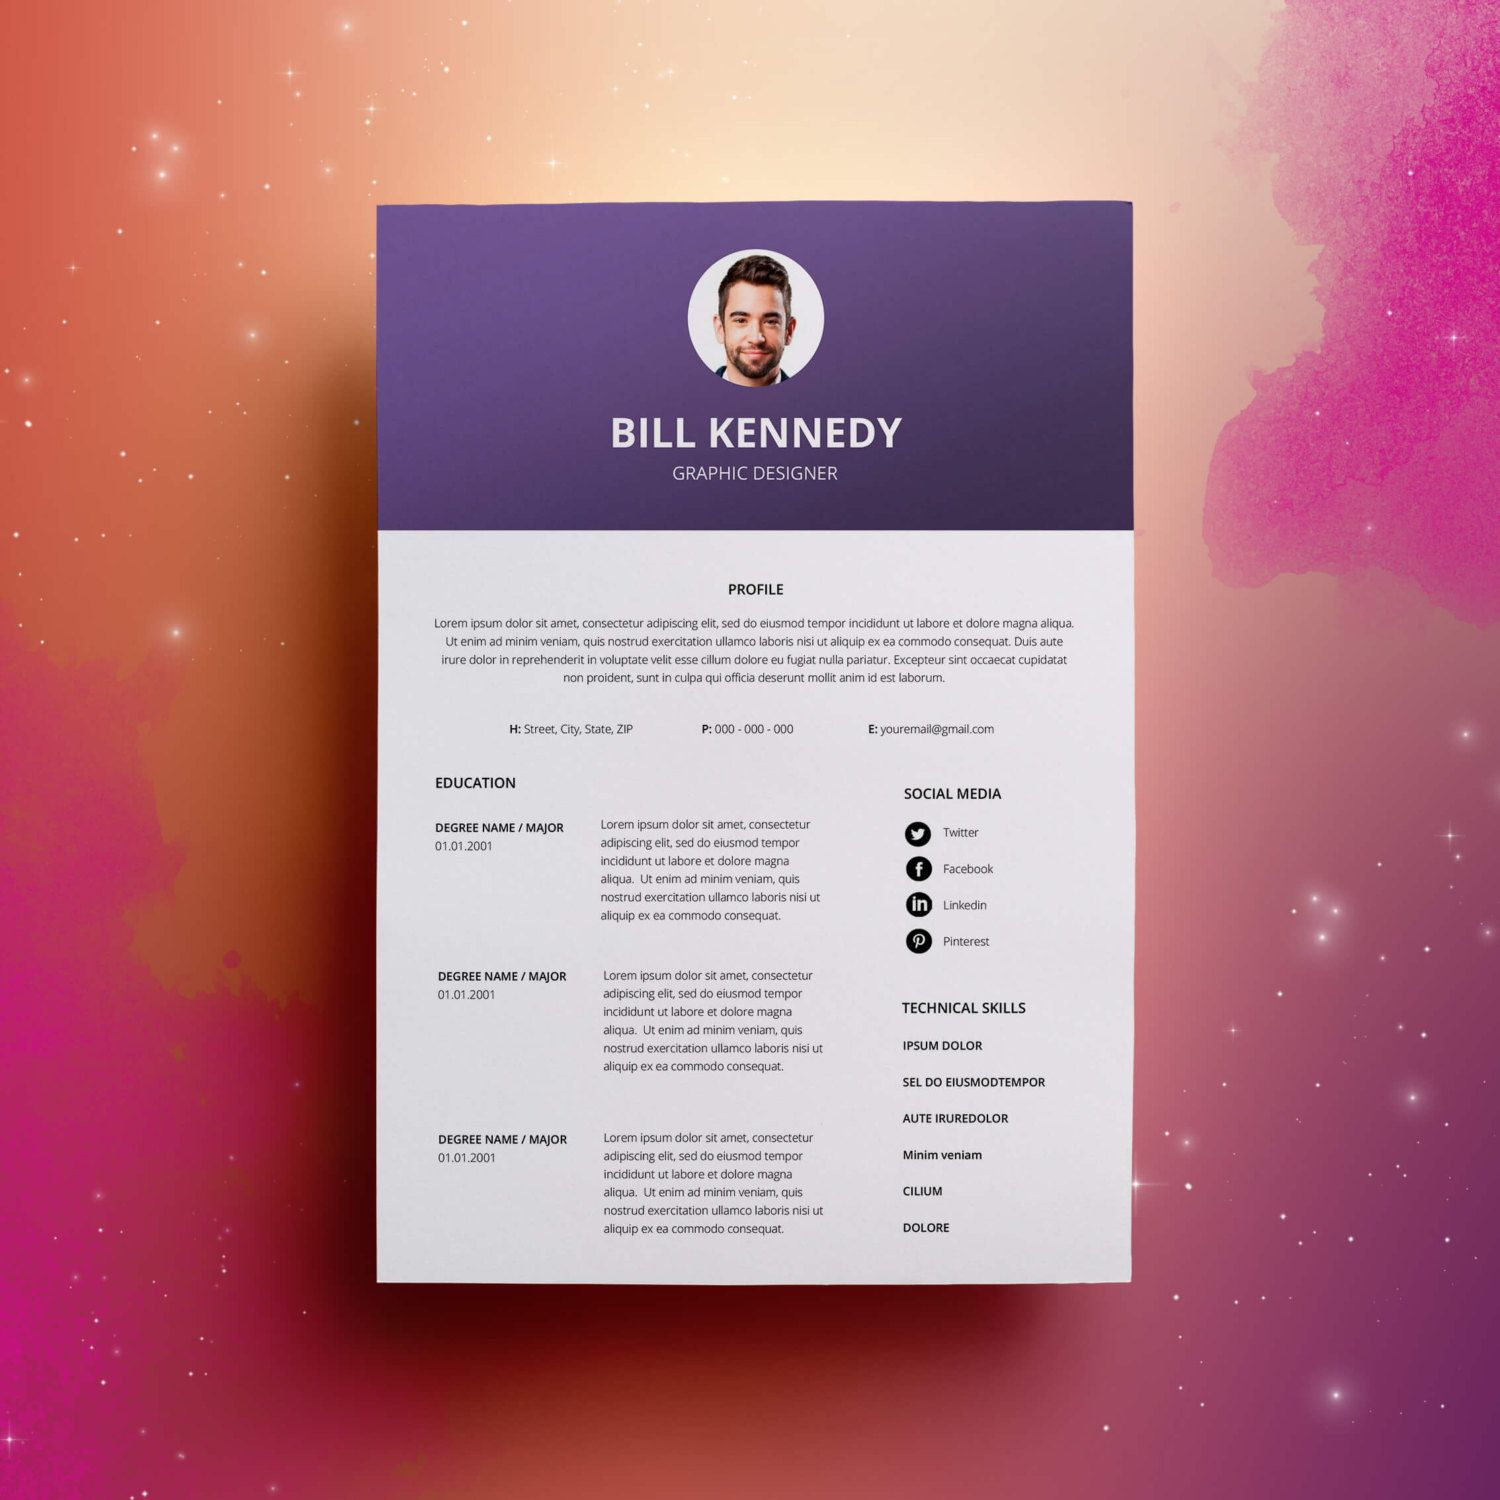 Template For A Resume In Word%0A Modern Resume Template  u     Cover Letter   Icon Set for Microsoft Word      Page Pack